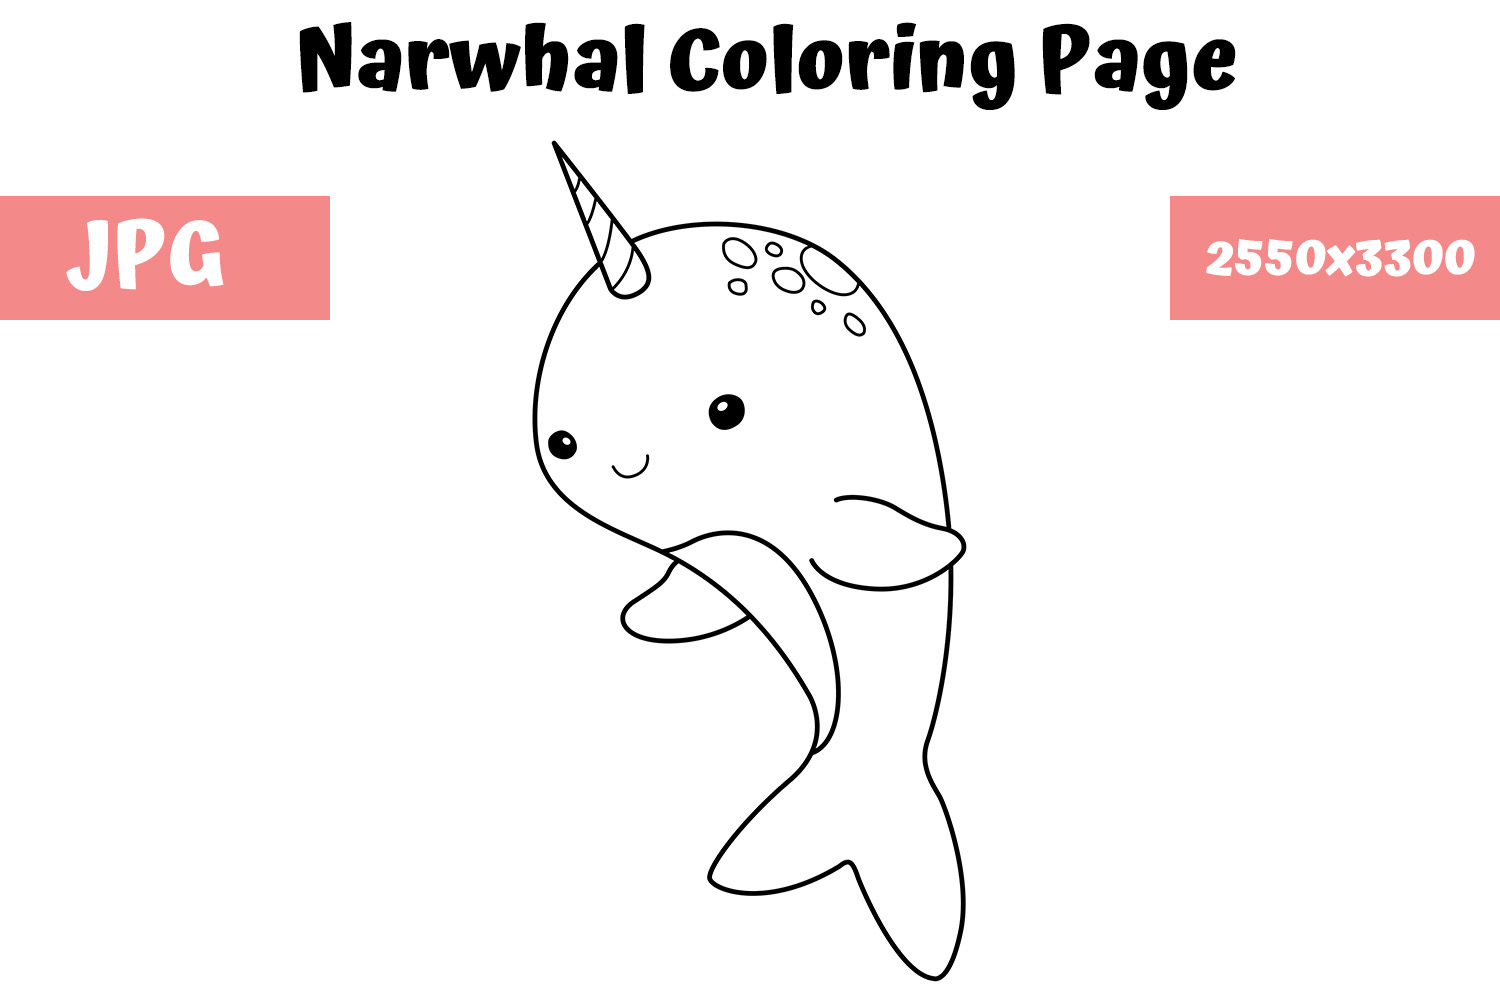 - Narwhal Coloring Book Page For Kids (Graphic) By MyBeautifulFiles